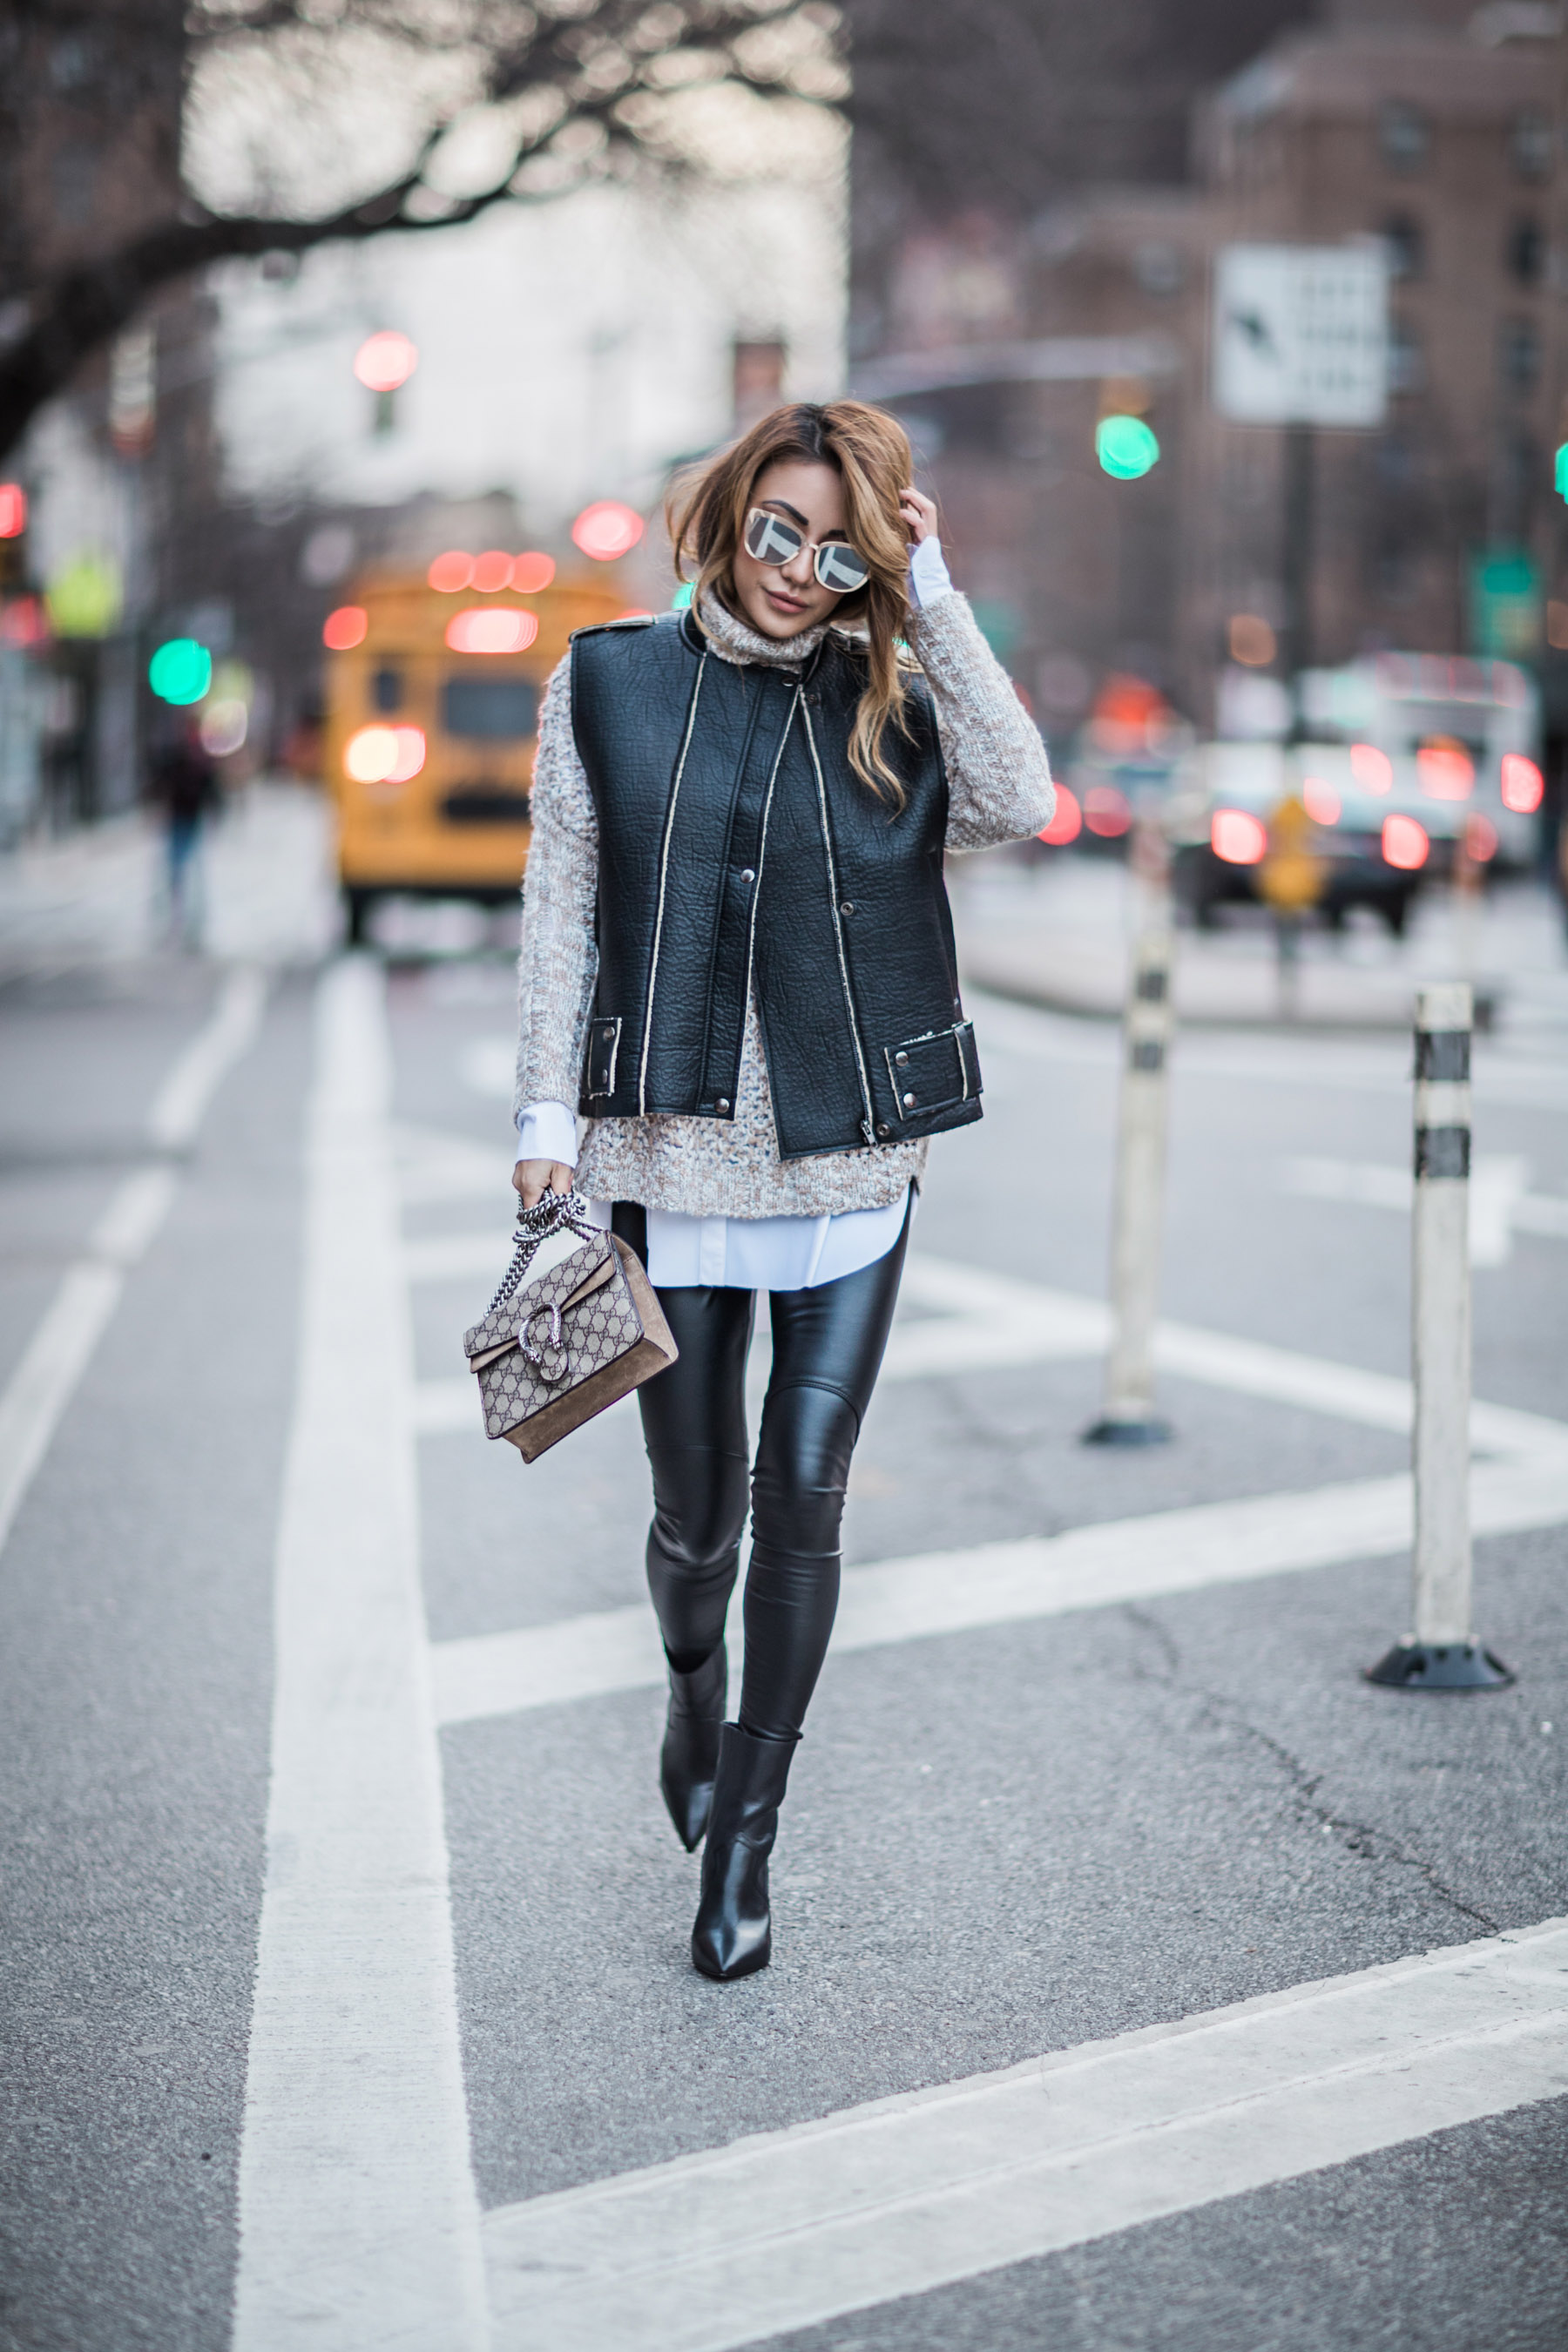 Essential Photography Tips for New Bloggers - Leather vest with leather leggings // NotJessFashion.com // layered look, winter outfit, winter layers, cozy winter look, mirrored sunglasses, gucci dionysus mini, leather leggings outfit, all saints boots, leather vest, how to layer for fall, jessica wang, new york fashion blogger, asian blogger, fashion blogger street style, street style fashion